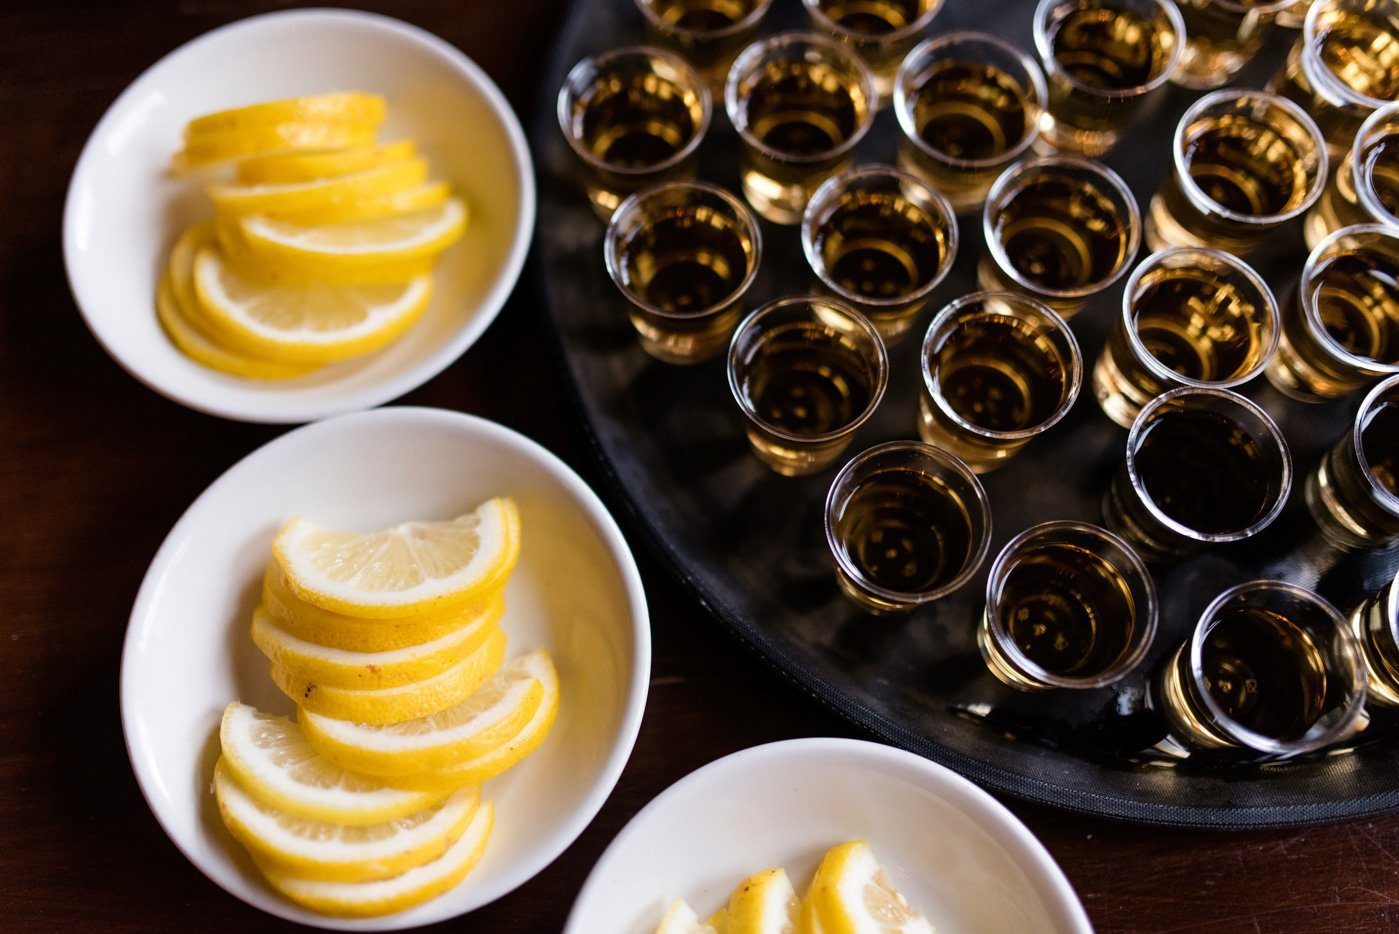 Tequila shots with lemon at The Peasant pub London